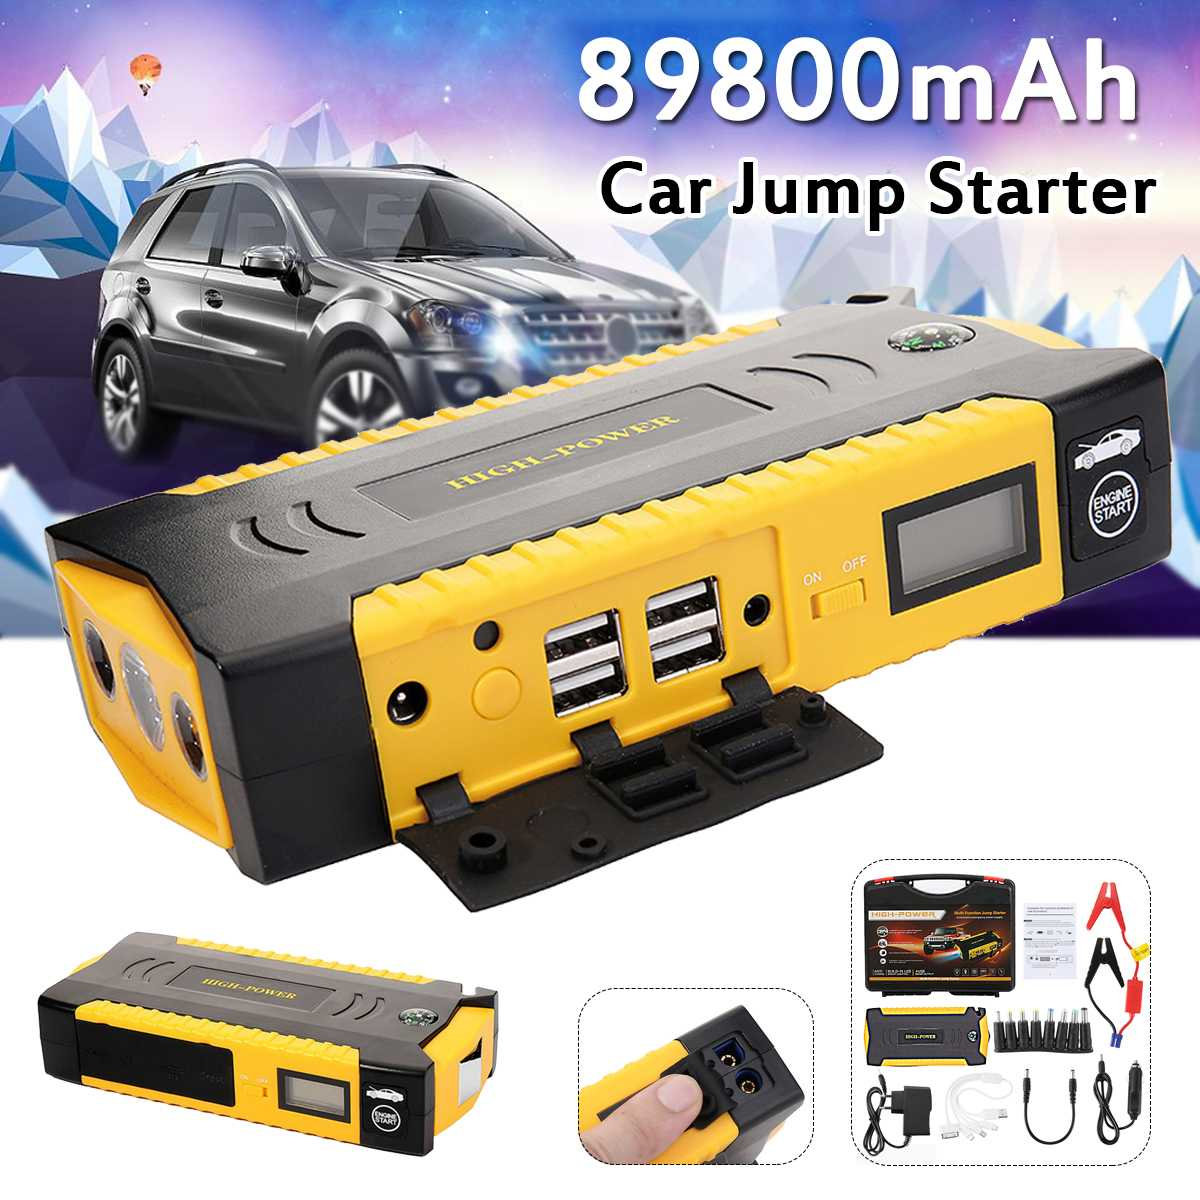 Car Diesels Jump Starter Booster 89800mAh 4USB Emergency Charger Battery Multifunction Power Bank for Diesels Car VehicleCar Diesels Jump Starter Booster 89800mAh 4USB Emergency Charger Battery Multifunction Power Bank for Diesels Car Vehicle